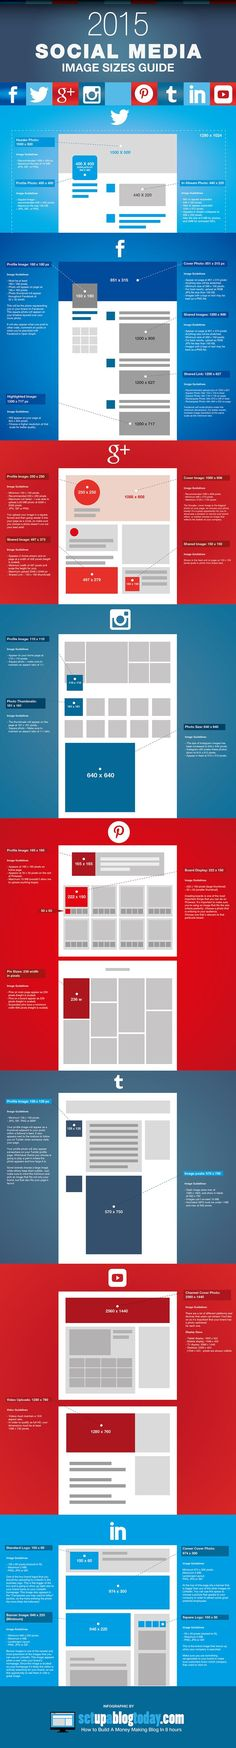 From Facebook to Google+, this #socialmedia image size guide gives you the exact dimensions for the top 8 social networks! PLUS best practices and strategies. via http://rebekahradice.com/social-media-image-sizes/ (scheduled via http://www.tailwindapp.com?utm_source=pinterest&utm_medium=twpin&utm_content=post1536401&utm_campaign=scheduler_attribution)